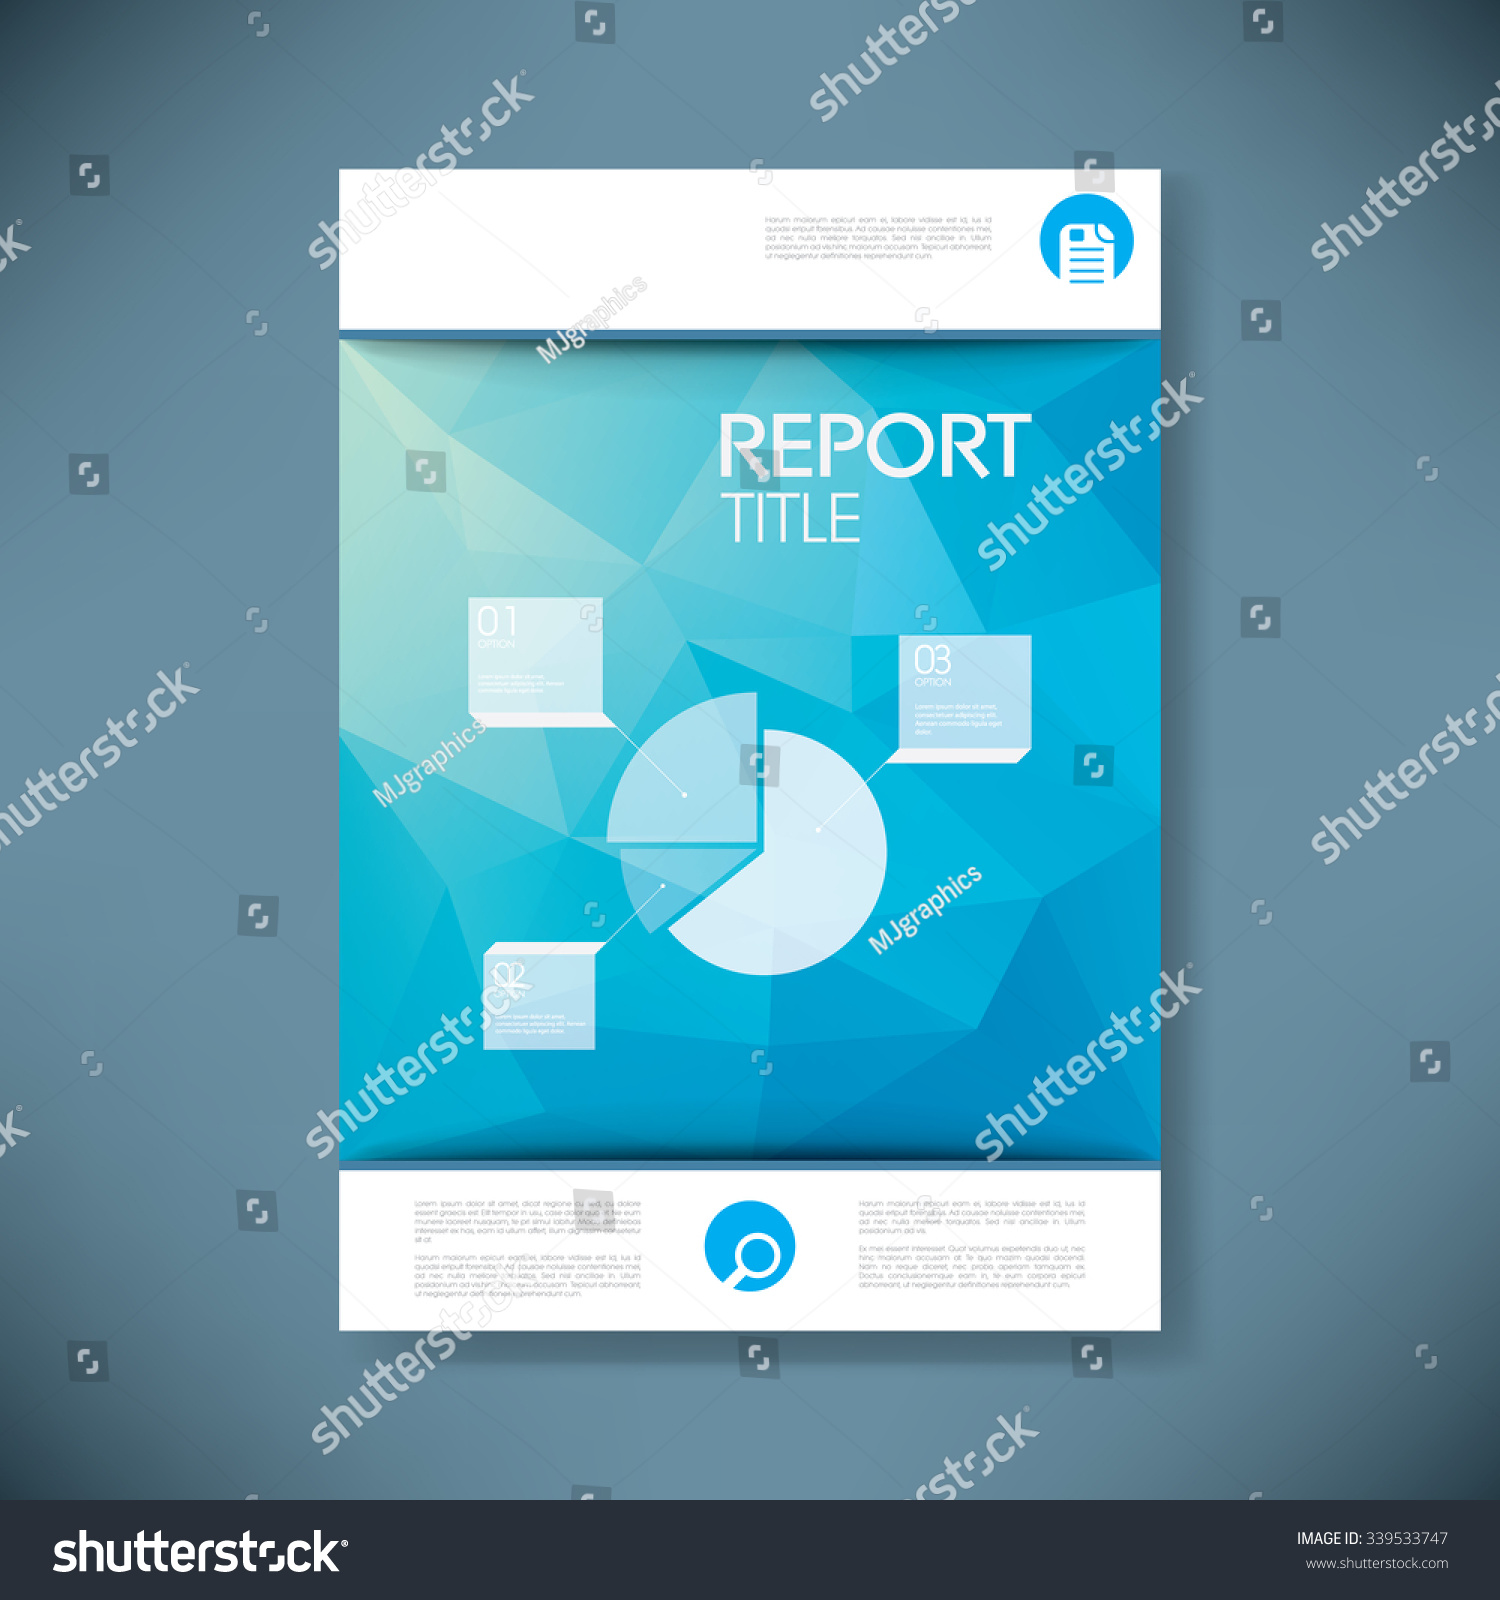 royalty report cover template for business stock report cover template for business presentation or brochure pie chart infographcis layout on blue low